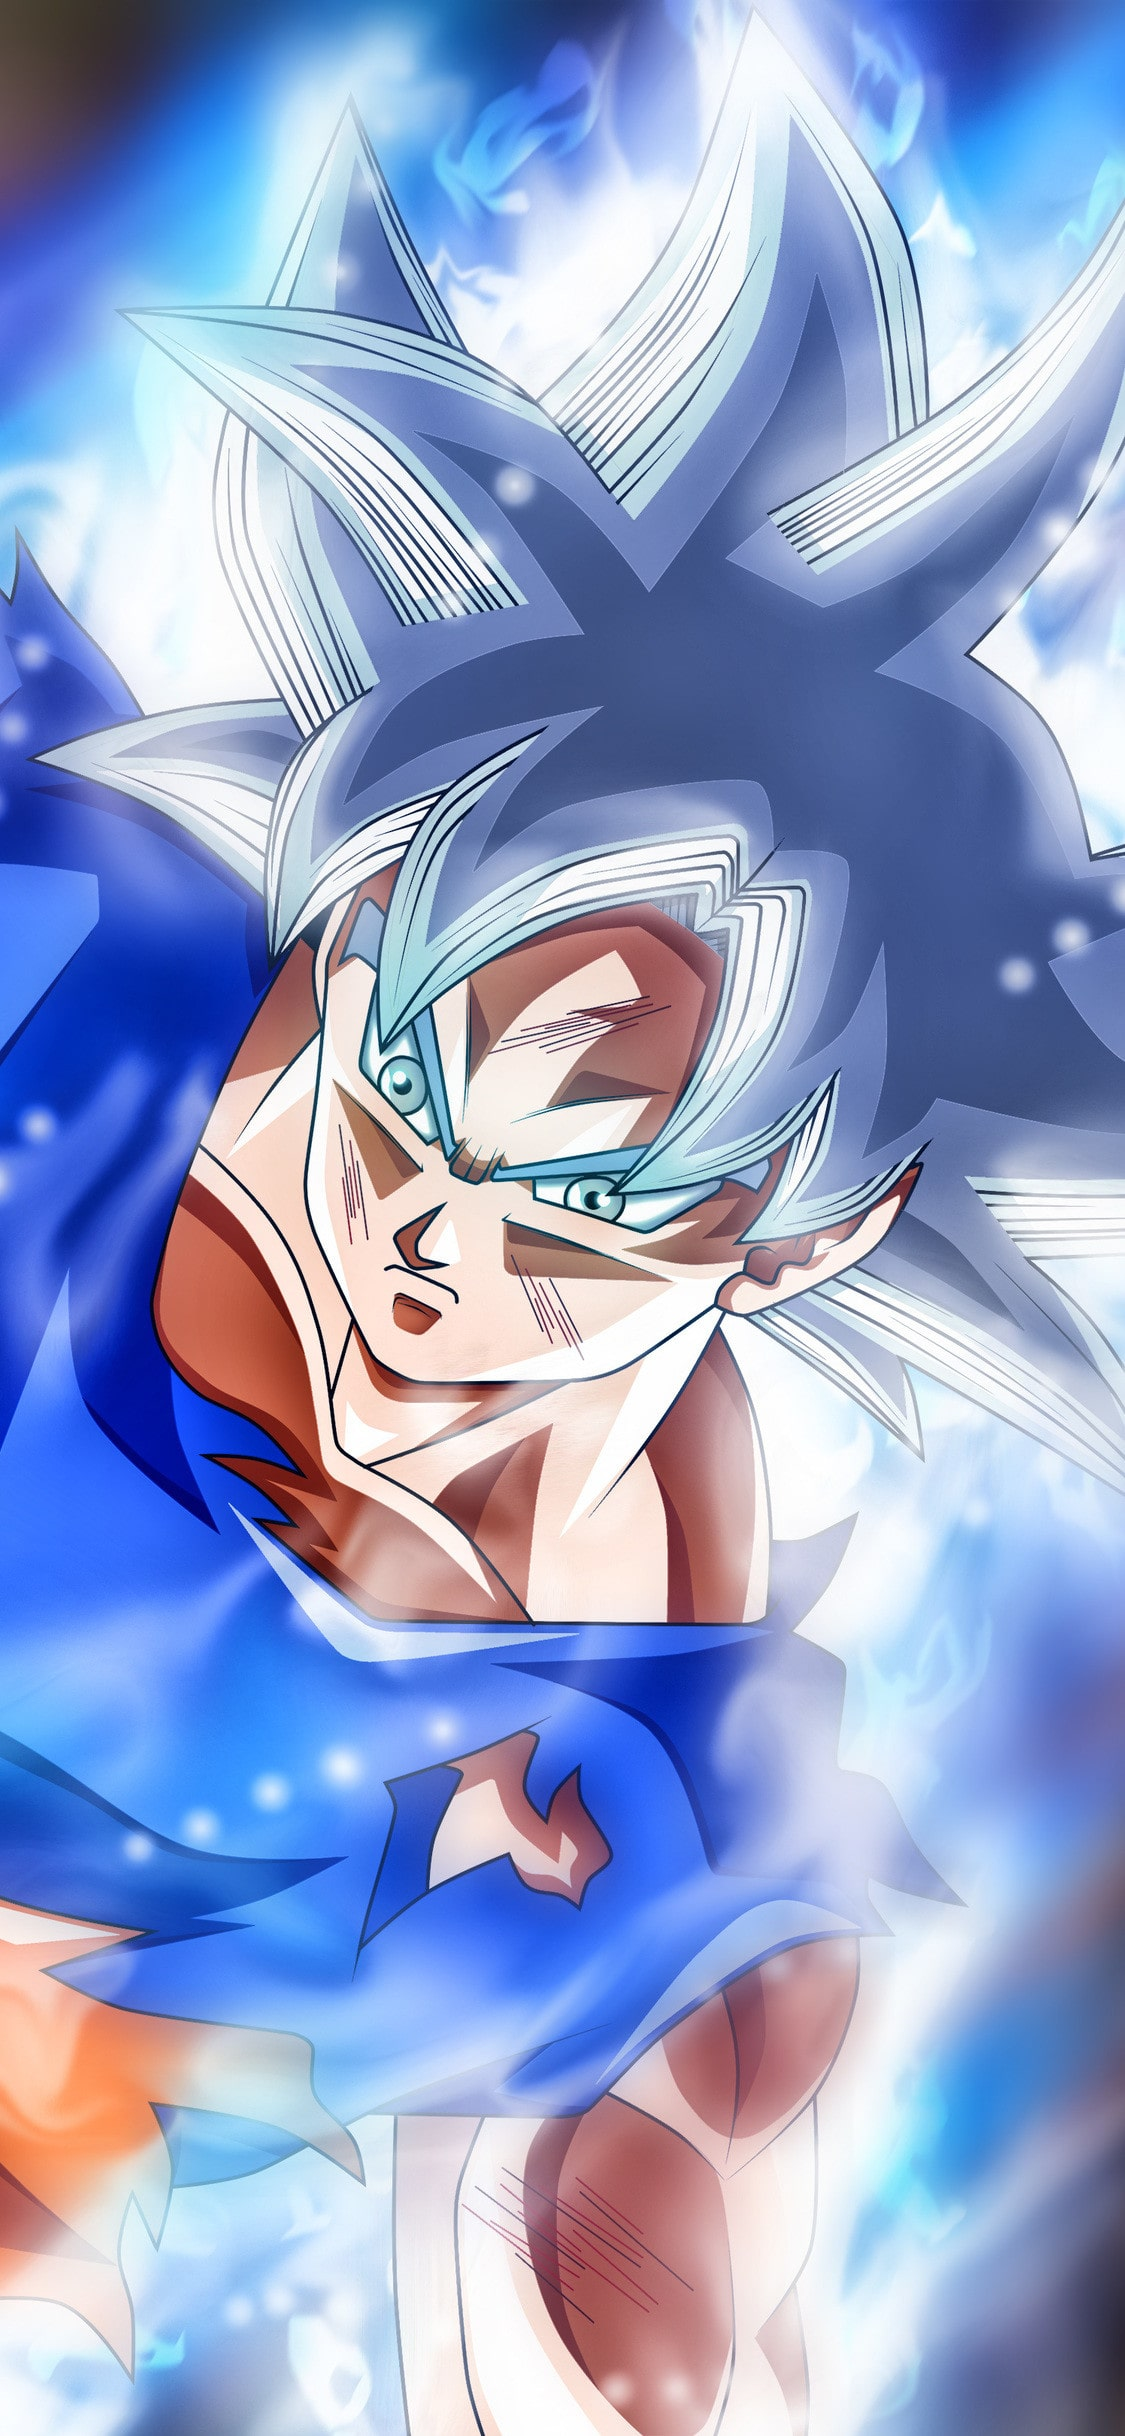 Dragon Ball Z Iphone Wallpaper Kolpaper Awesome Free Hd Wallpapers